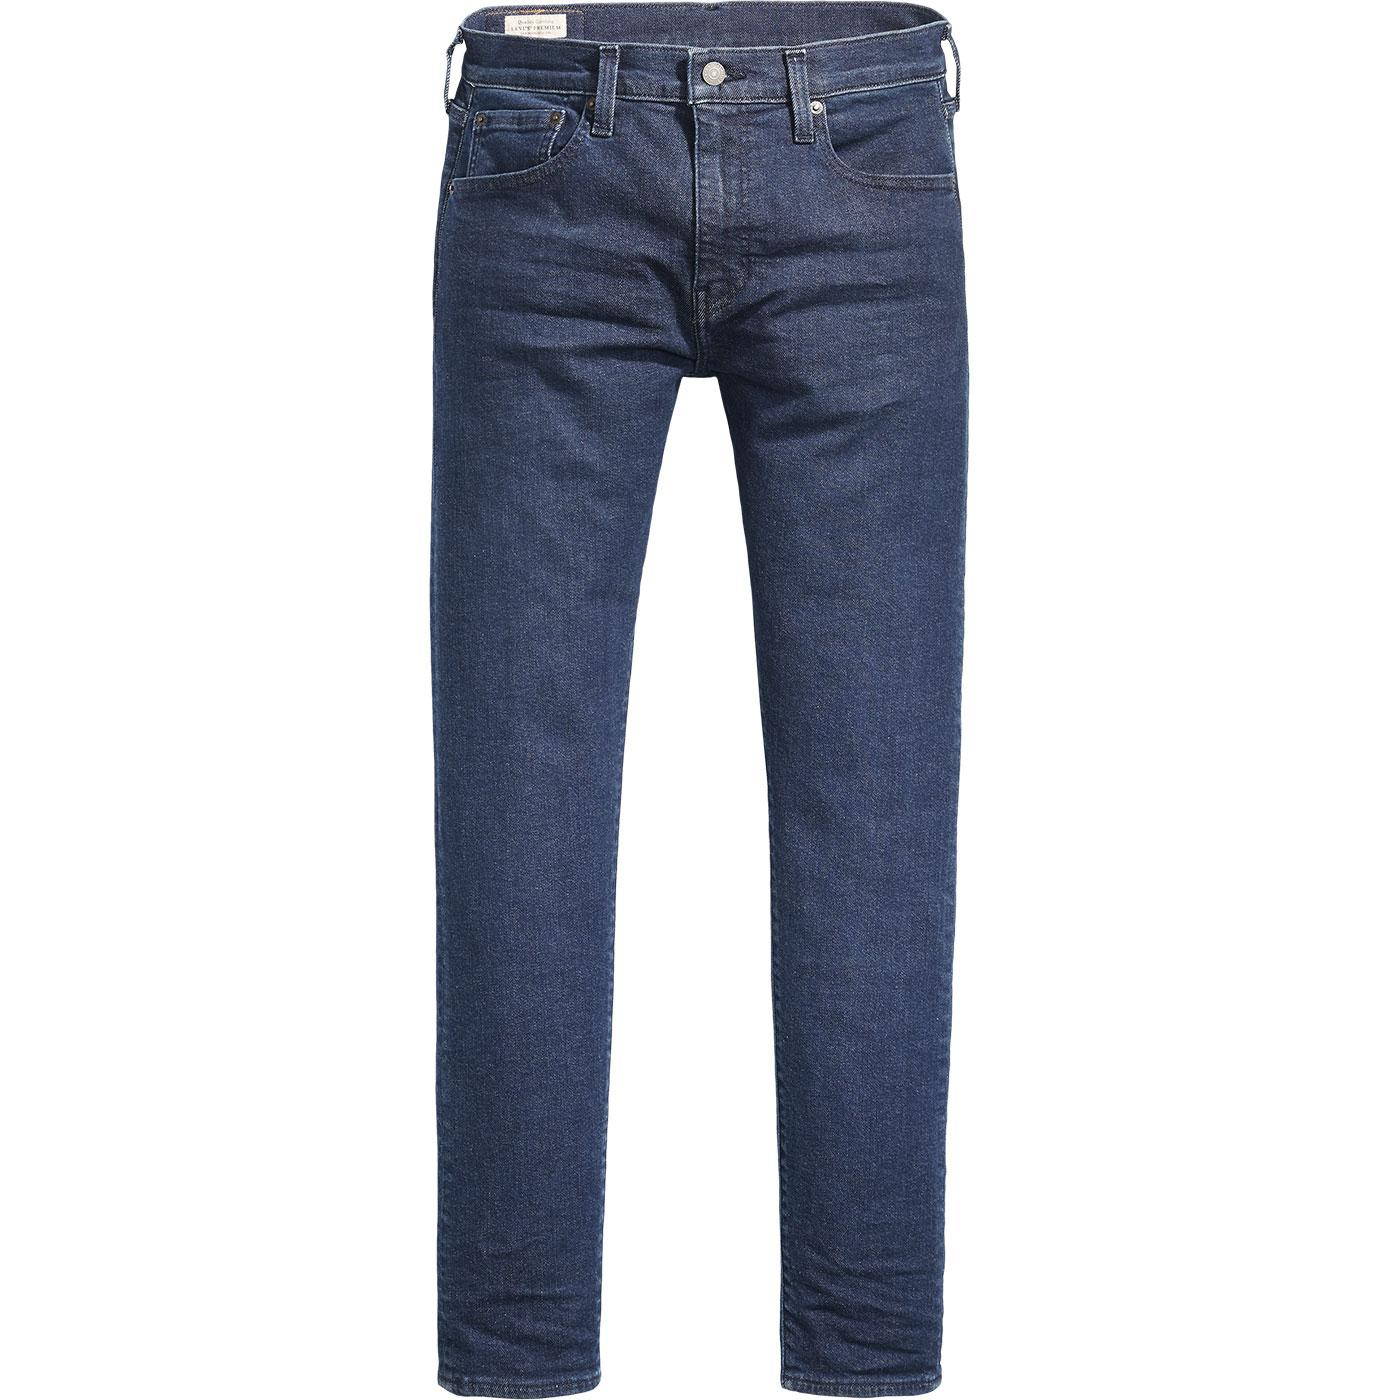 LEVI'S 512 Slim Taper Denim Jeans SAGE NIGHTSHINE